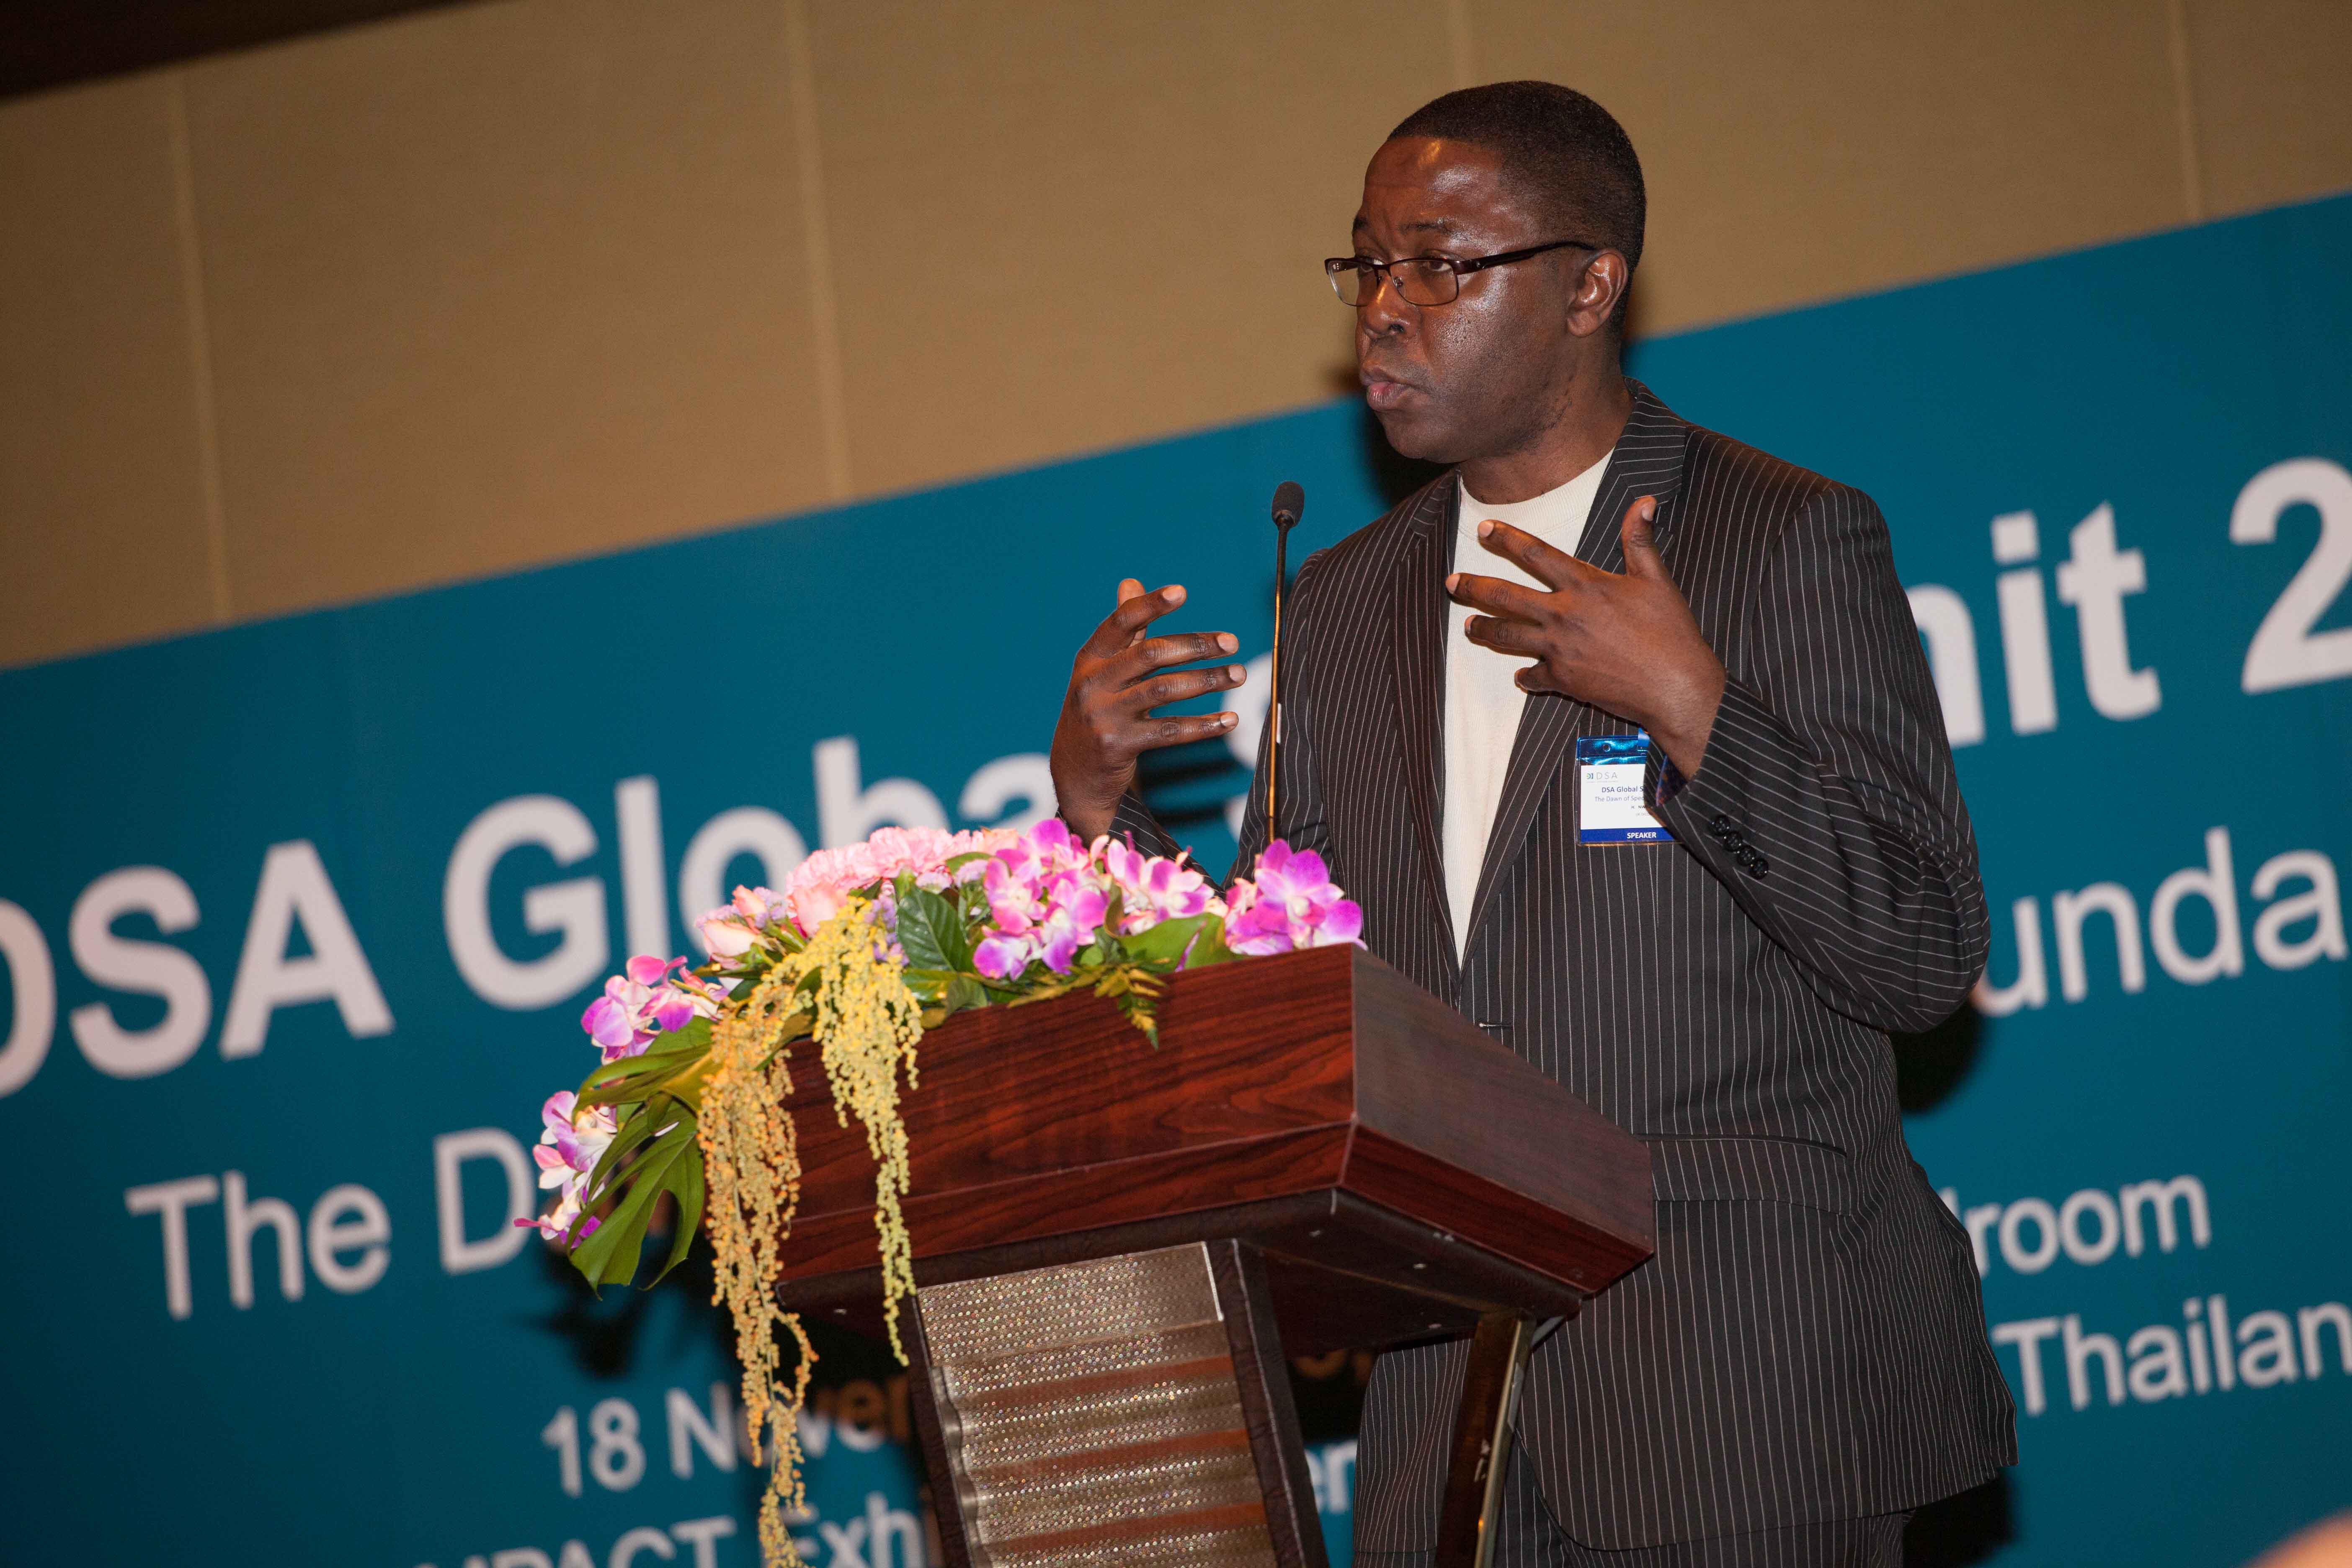 H Nwana speaking in favour of TVWS and the DSA at an industry event in Thailand.